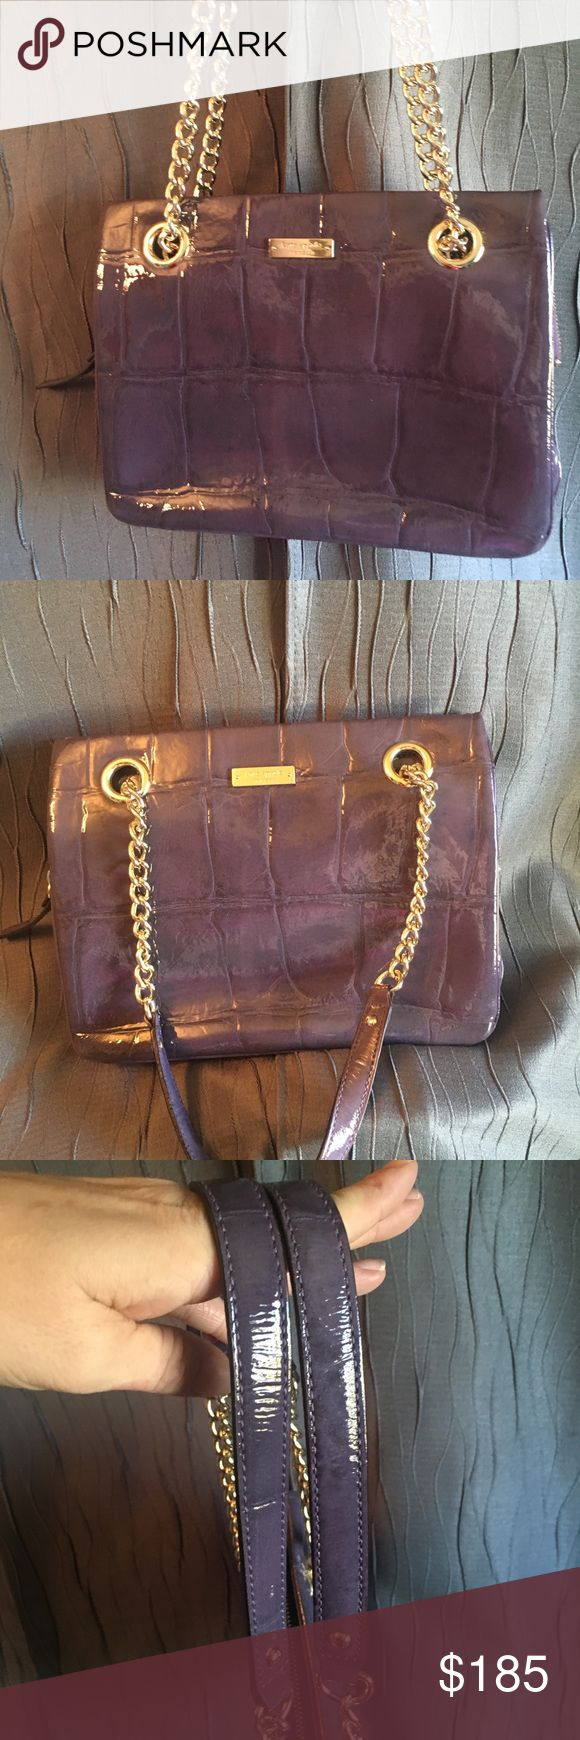 """Kate Spade """"Knightsbridge Helena"""" Handbag! GORGEOUS, HIGH END HANDBAG CARRIED FOR A SEASON, LOVELY! Kate Spade Knightsbridge Helena Handbag PATENT PURPLE CROC EMBOSSED MSRP: $395 Crocodile embossed patent cowhide with matching trim over the shoulder with open top, 14-karat light gold plated hardware middle zipper divider, kate spade new york light gold staple signature in front. Interior: cream/gold woven dot pattern, measures 11"""" x 8 1/2, strap drop is 9"""". Many interior pockets & plenty of…"""